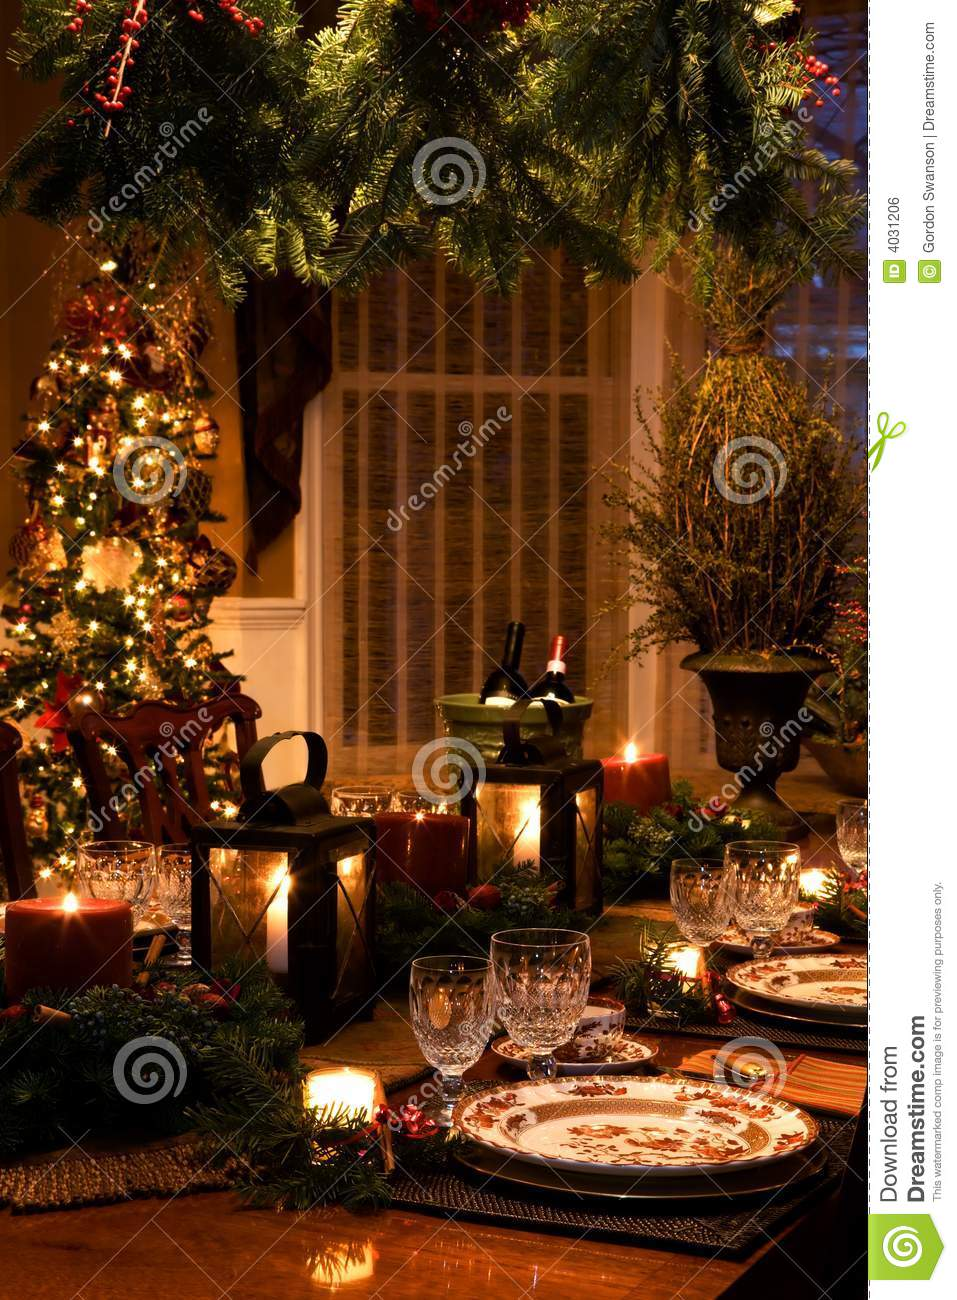 New England Fall Themed Wallpaper Christmas Interiors Stock Photo Image Of Decorate Dinner